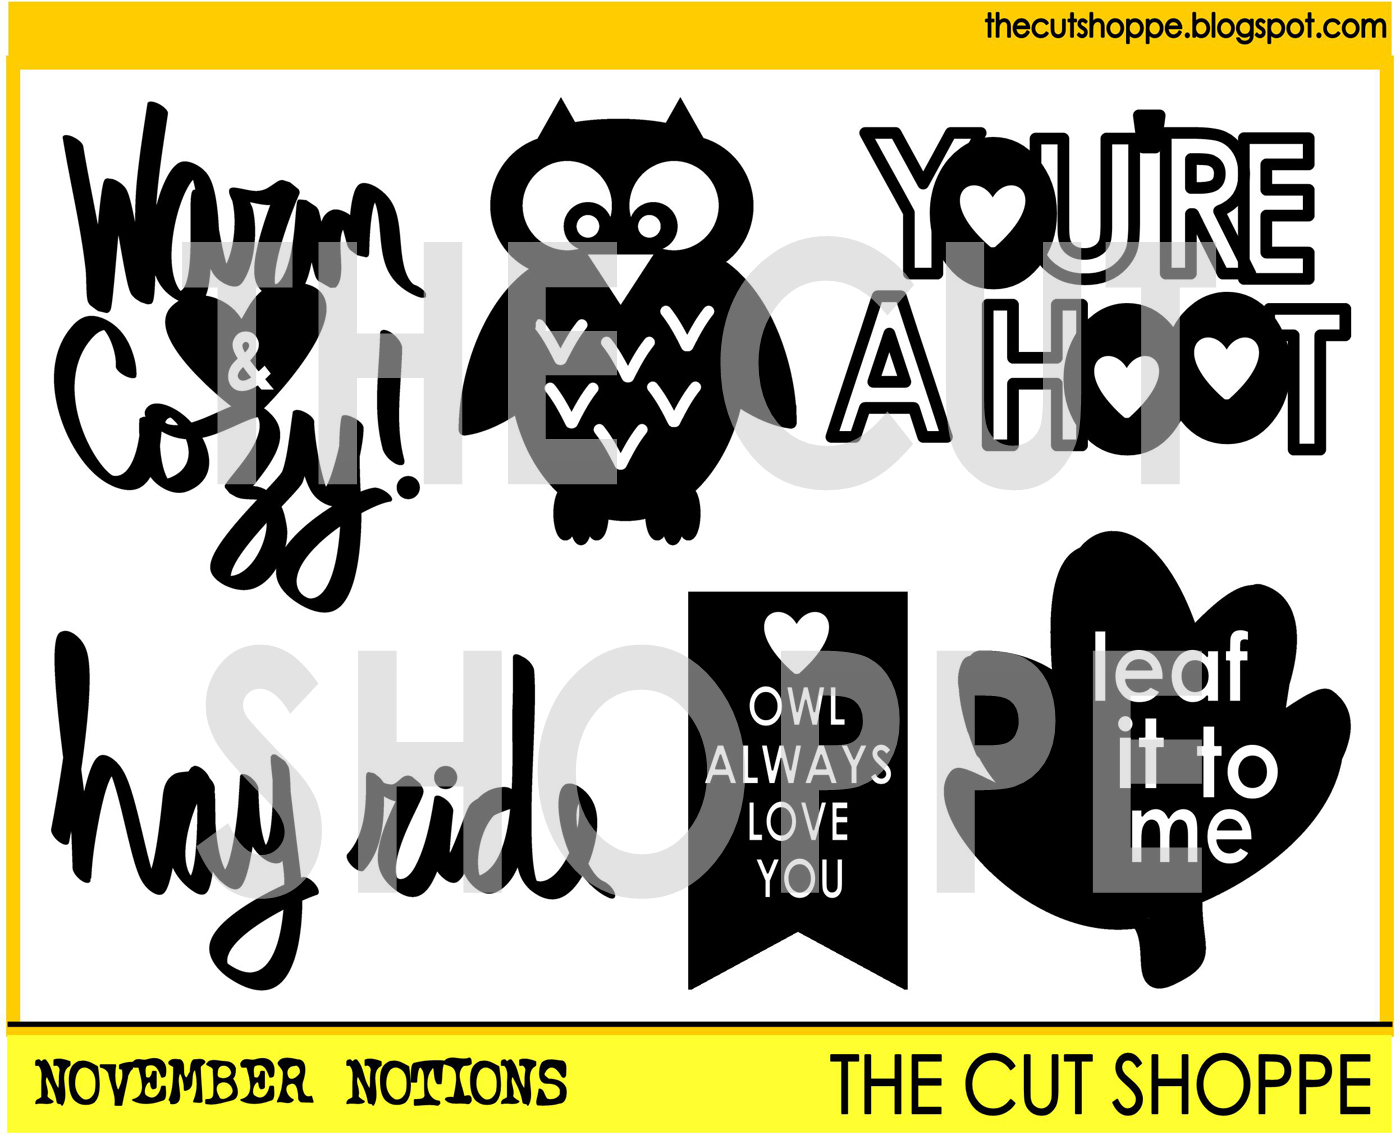 https://www.etsy.com/listing/209028378/the-november-notions-cut-file-includes-6?ref=shop_home_active_3